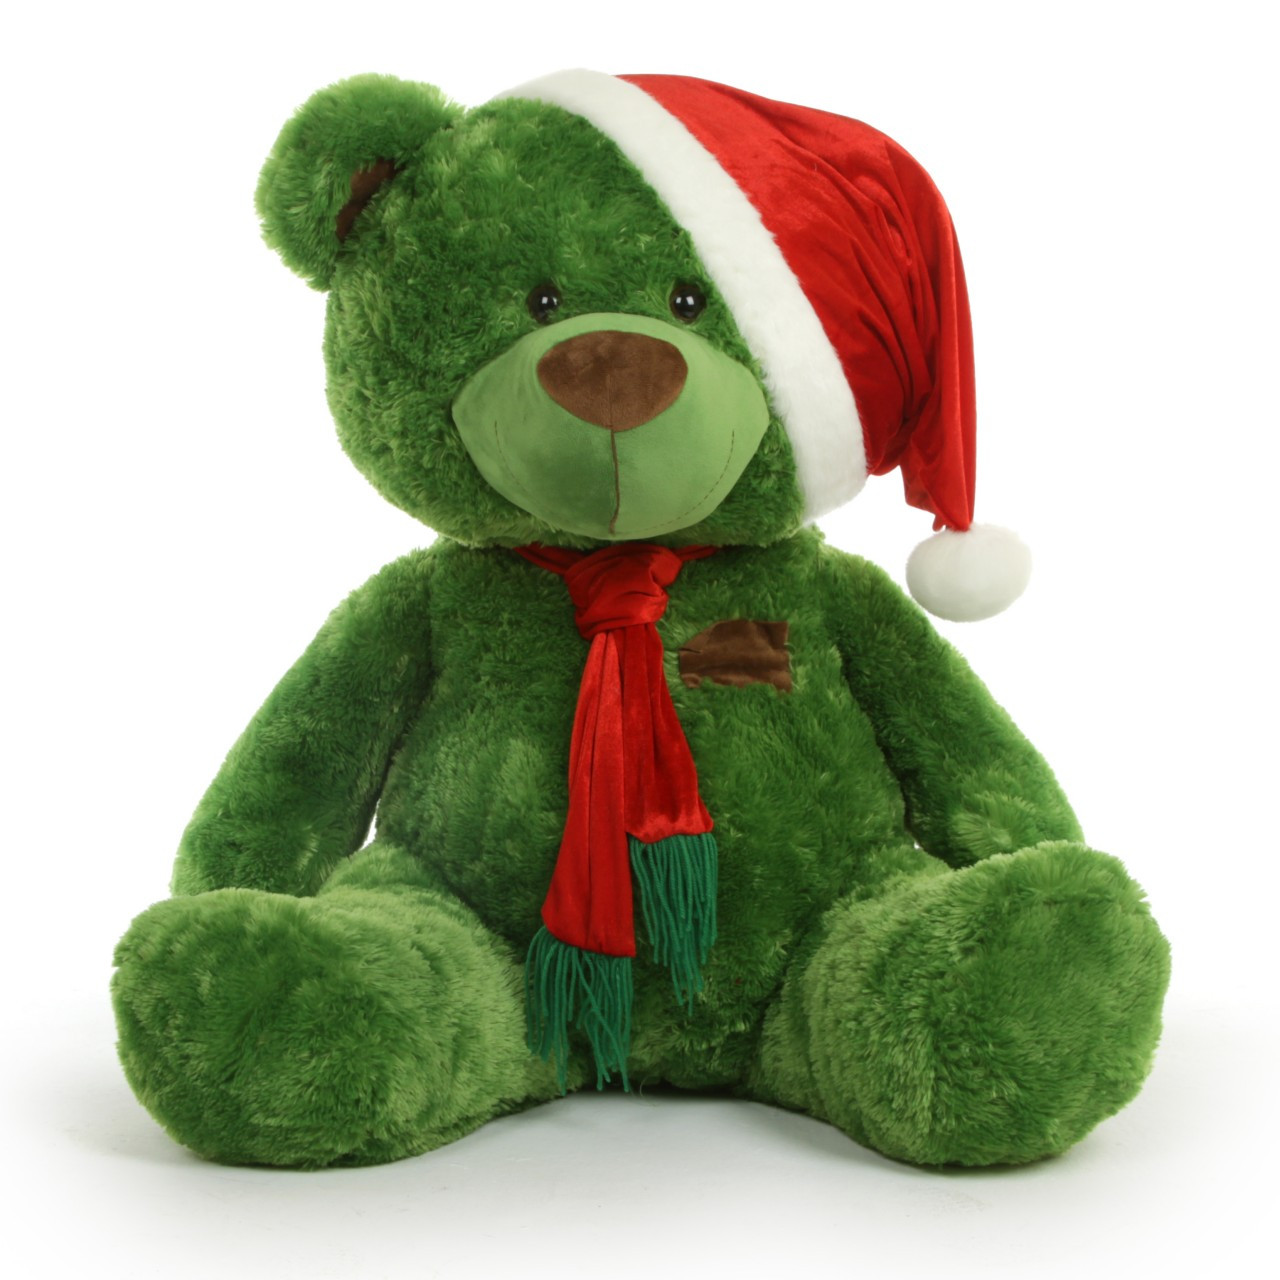 Image result for green christmas teddy bear